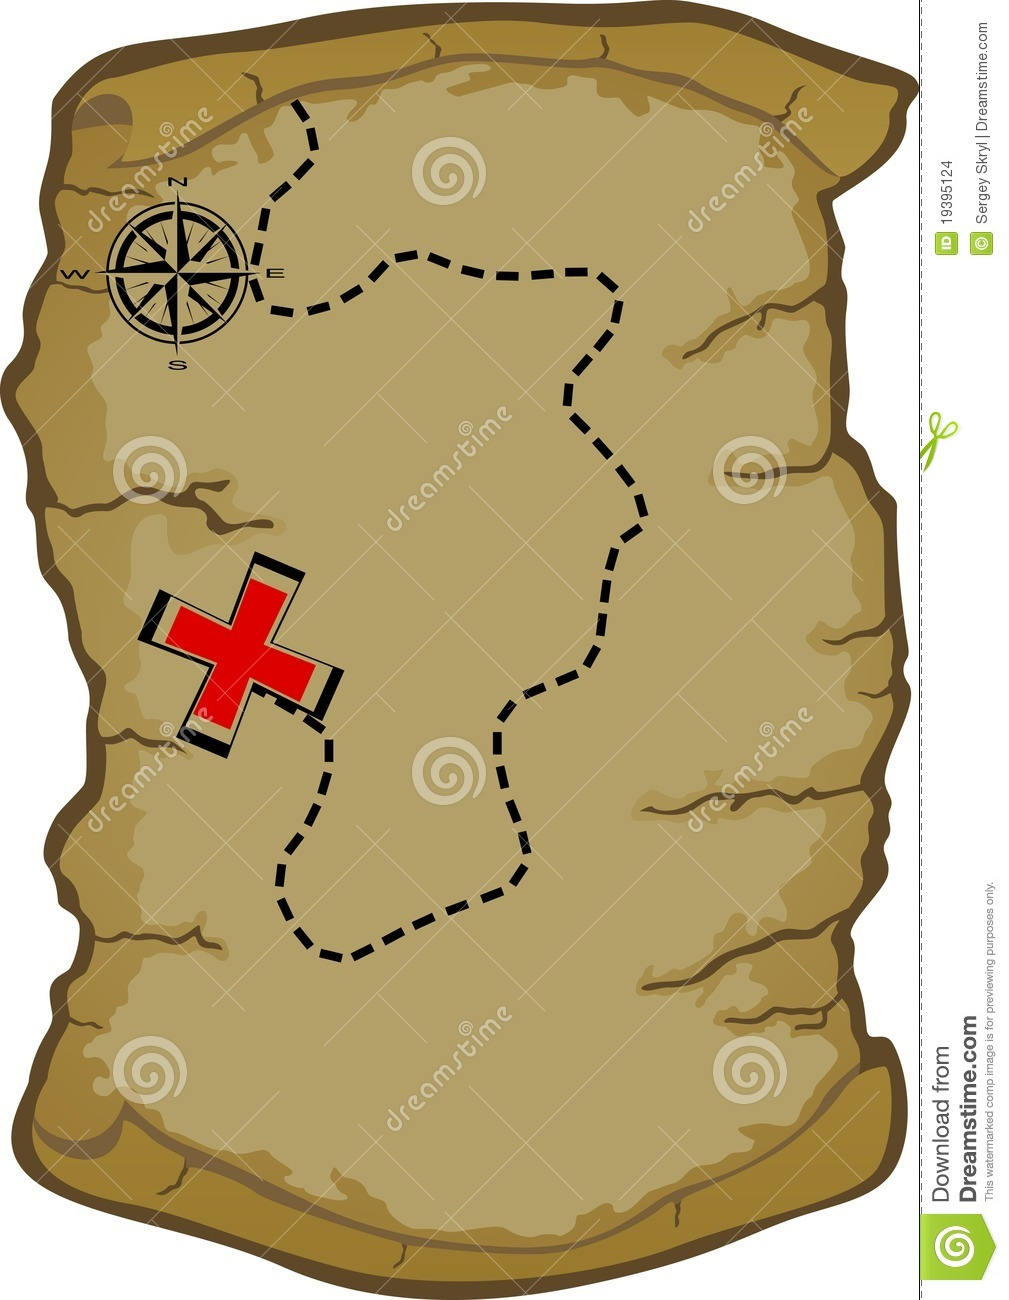 Stock Images Map Treasure Hunt Image19395124 moreover BushBurner furthermore No Rules Just Wrong additionally Watch in addition File Winx Club Musa Believix pose. on old cartoon shows